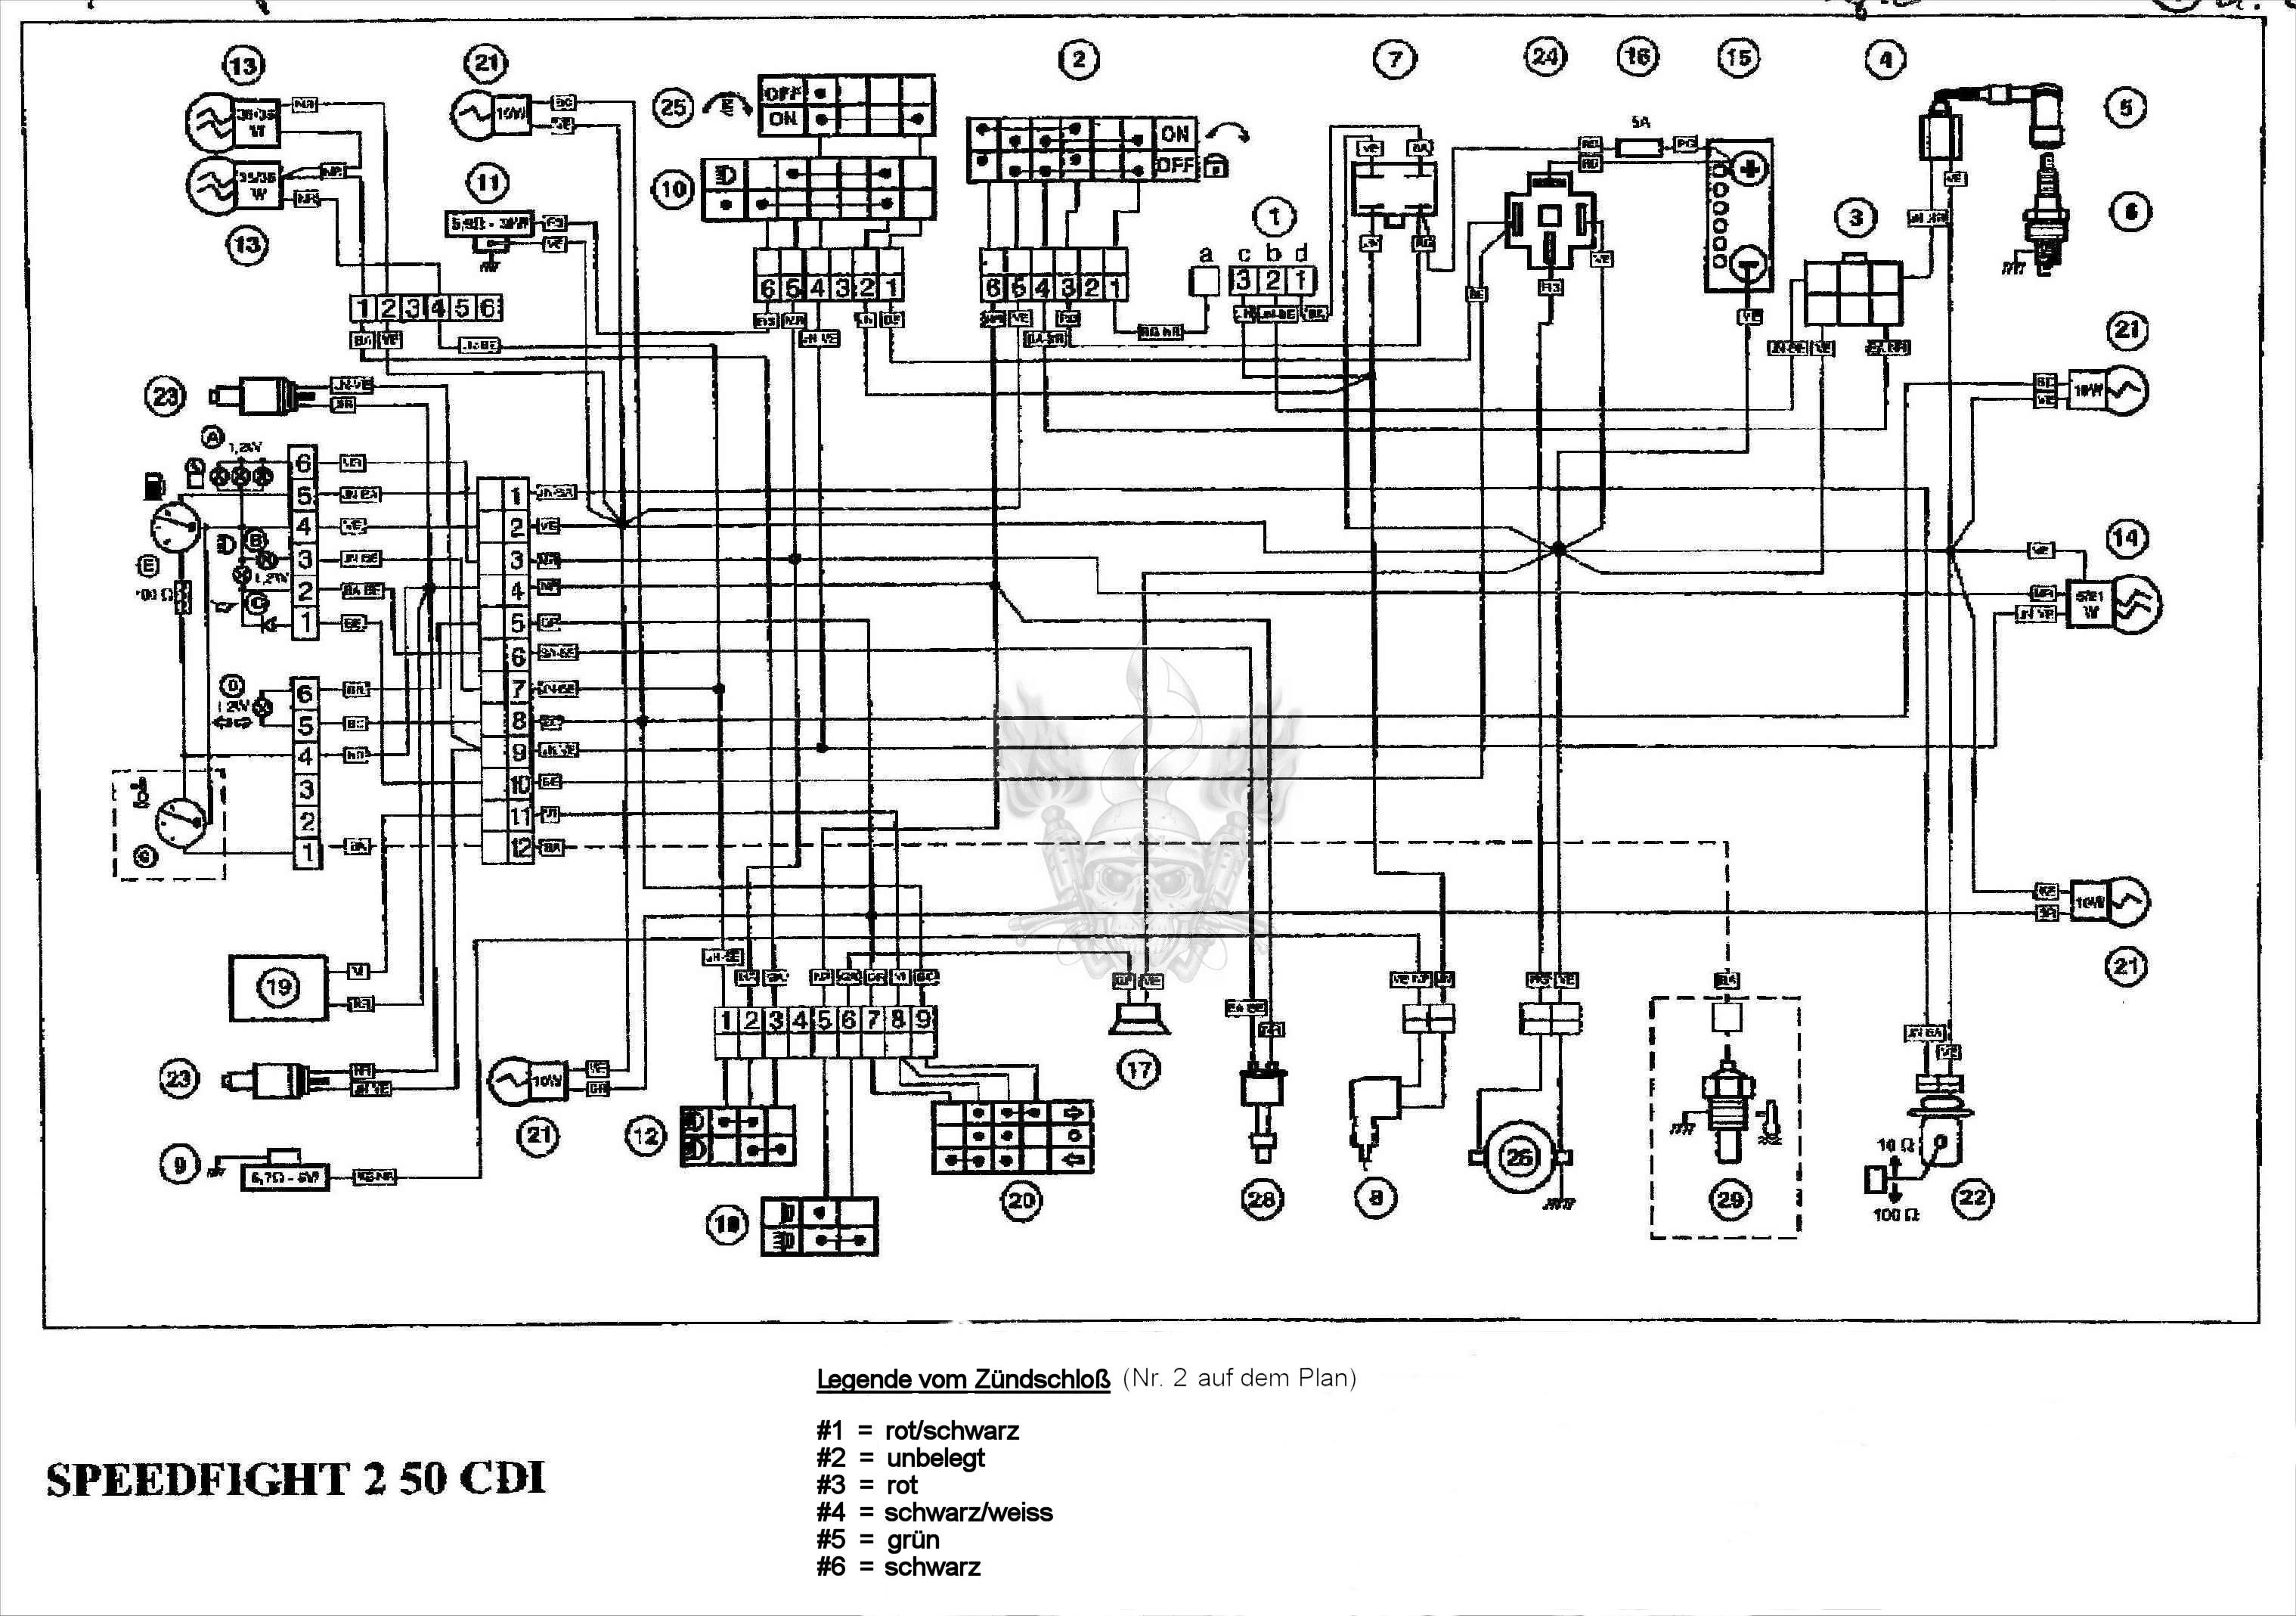 peugeot motorcycle manuals pdf wiring diagrams fault codes rh motorcycle manual com 3-Way Switch Wiring Diagram Residential Electrical Wiring Diagrams